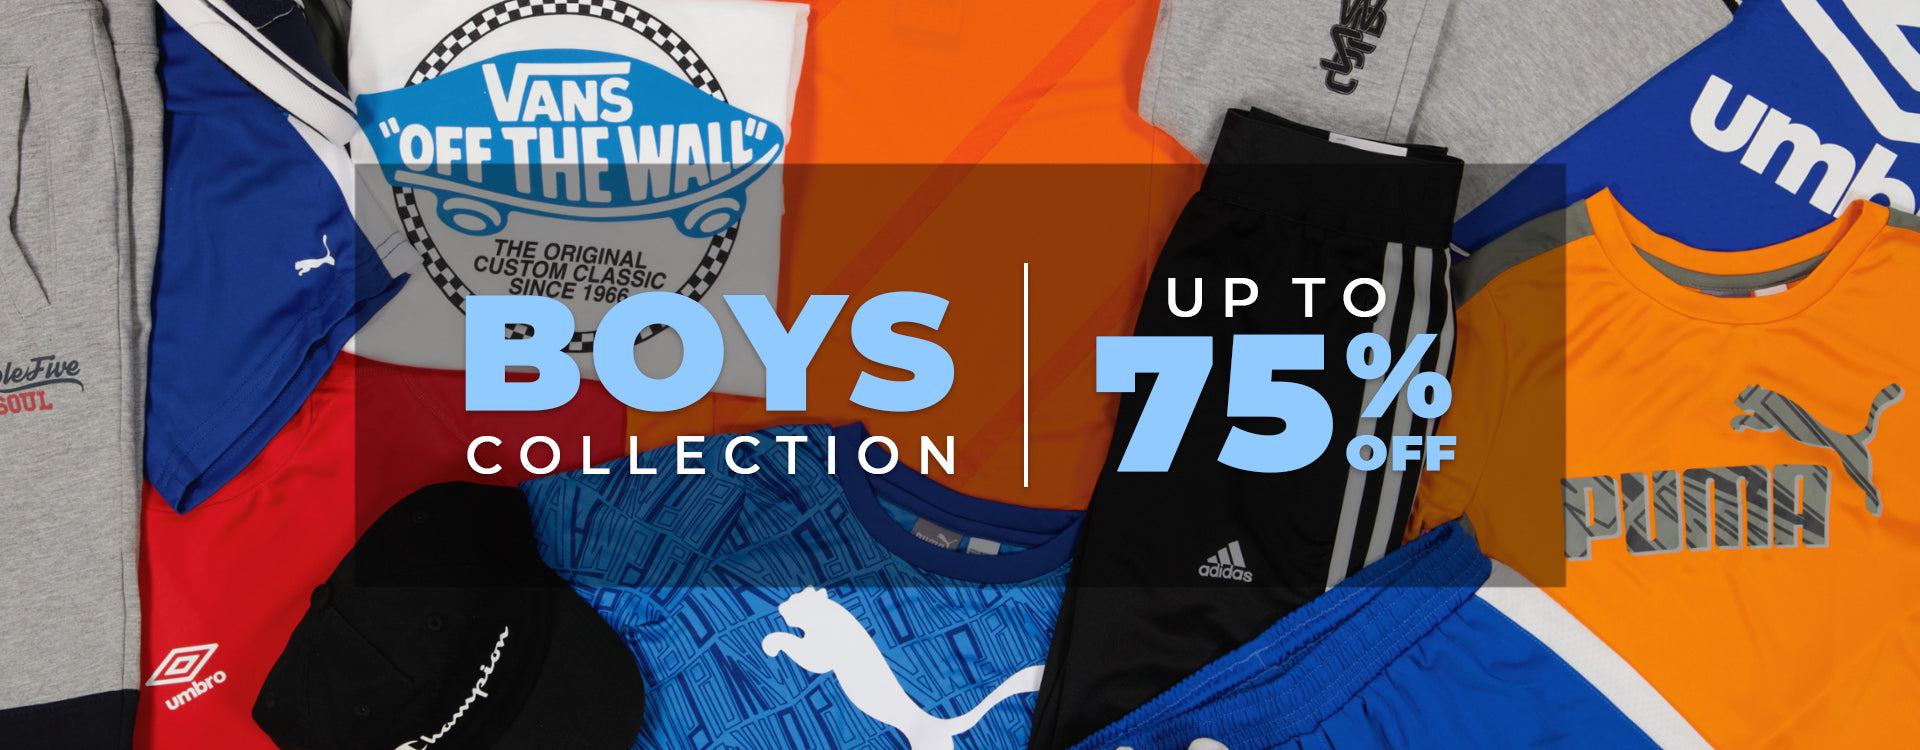 Boy's Collection Up To 75% Off